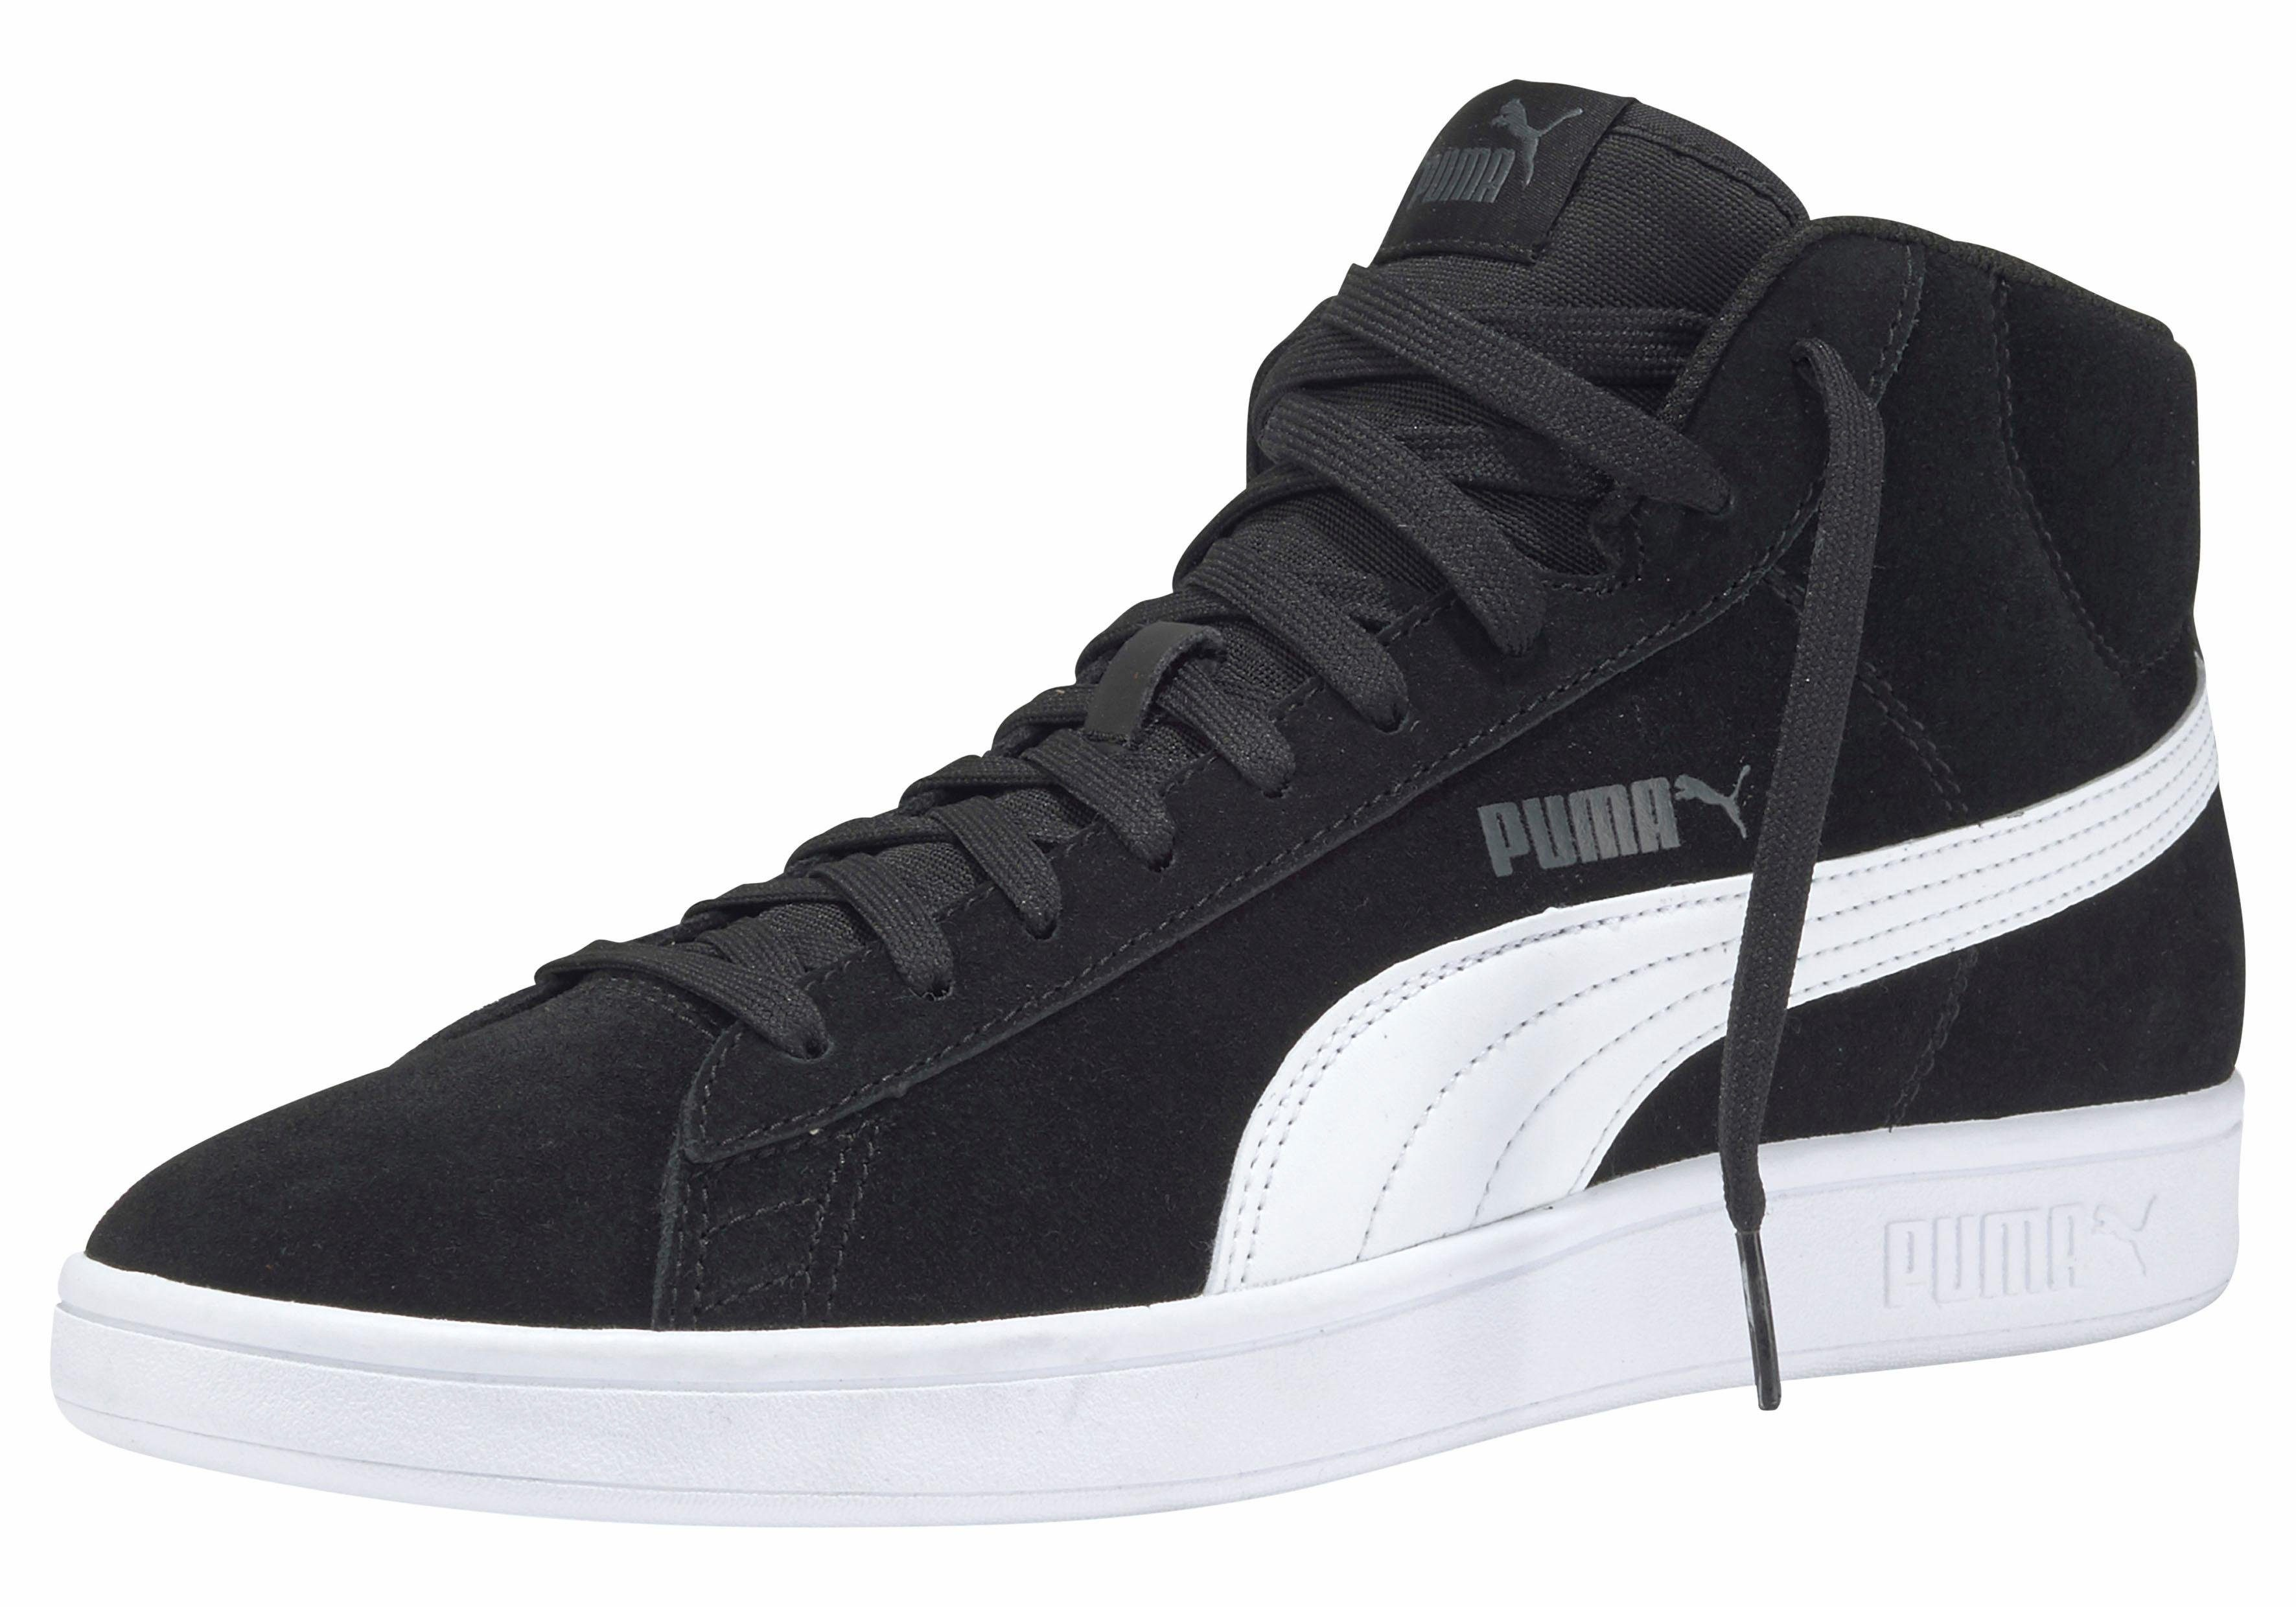 PUMA »Smash v2 Mid SD« Sneaker, Weiches Obermaterial aus Synthetik online kaufen | OTTO